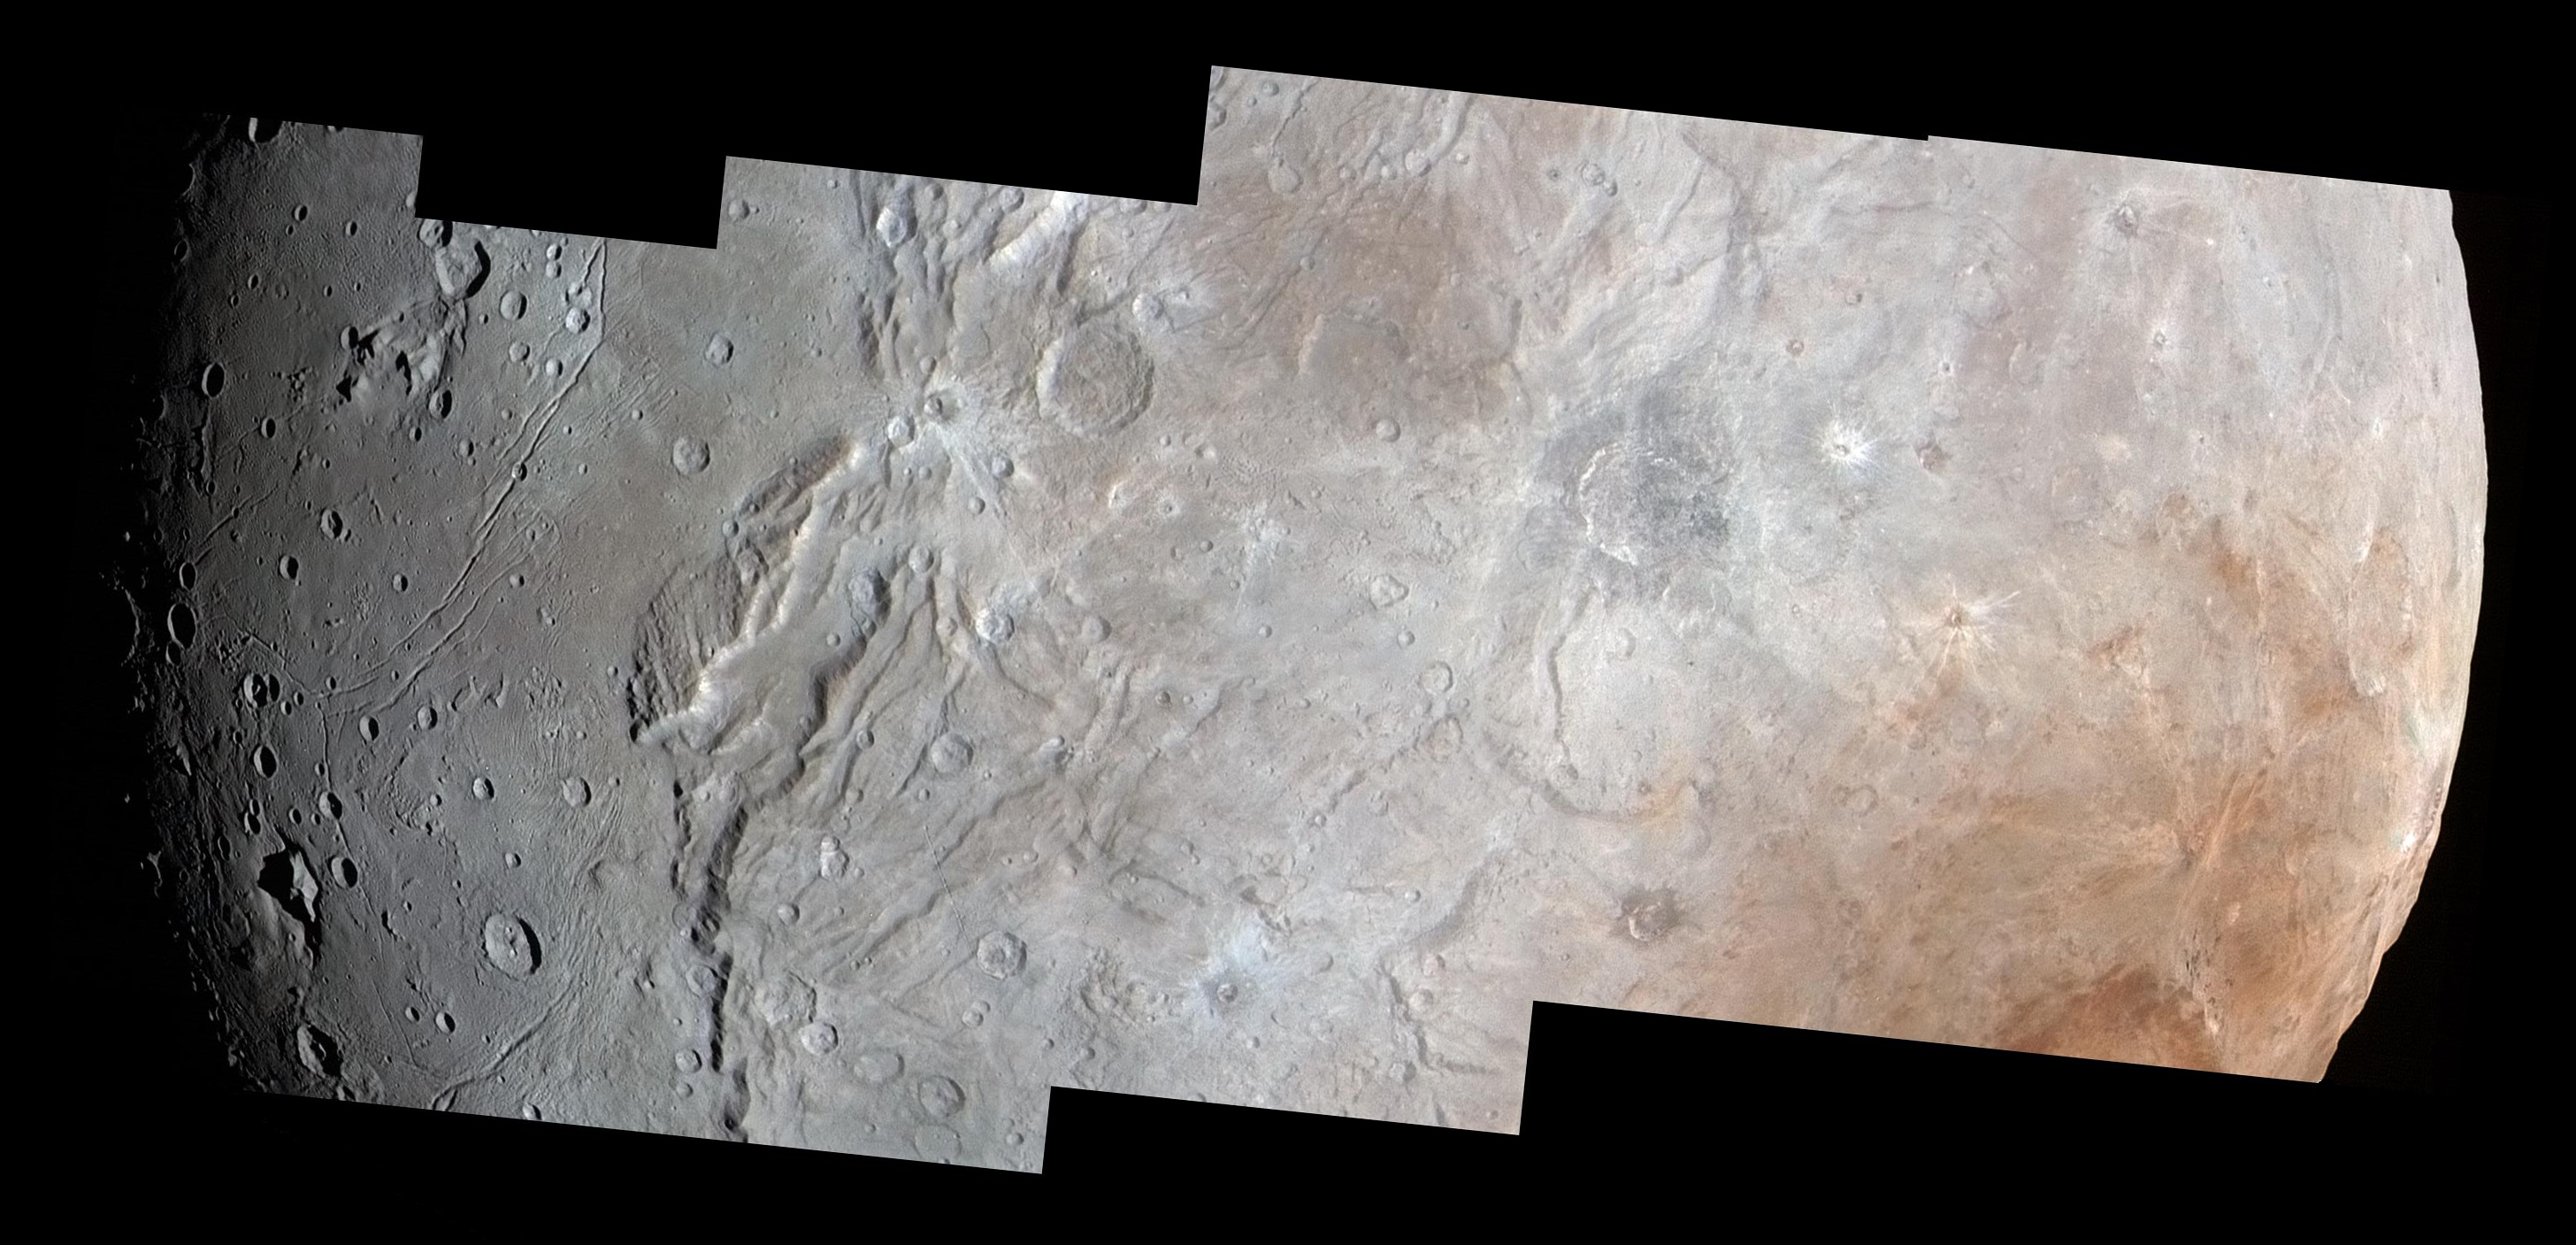 High-resolution images of Charon were taken by the Long Range Reconnaissance Imager (LORRI) on NASA's New Horizons spacecraft, shortly before closest approach on 14 July 2015, and overlaid with enhanced colour from the Ralph/Multispectral Visual Imaging Camera (MVIC). Charon's cratered uplands at the right are broken by series of canyons, and replaced on the left (south) by the rolling plains of the informally named VulcanPlanum. The scene covers Charon's width of 754miles (1,214kilometres) and resolves details as small as 0.5miles (0.8kilometres). North is to the right. (Click to view full-size picture). Image credit: NASA/Johns Hopkins University Applied Physics Laboratory/Southwest Research Institute.